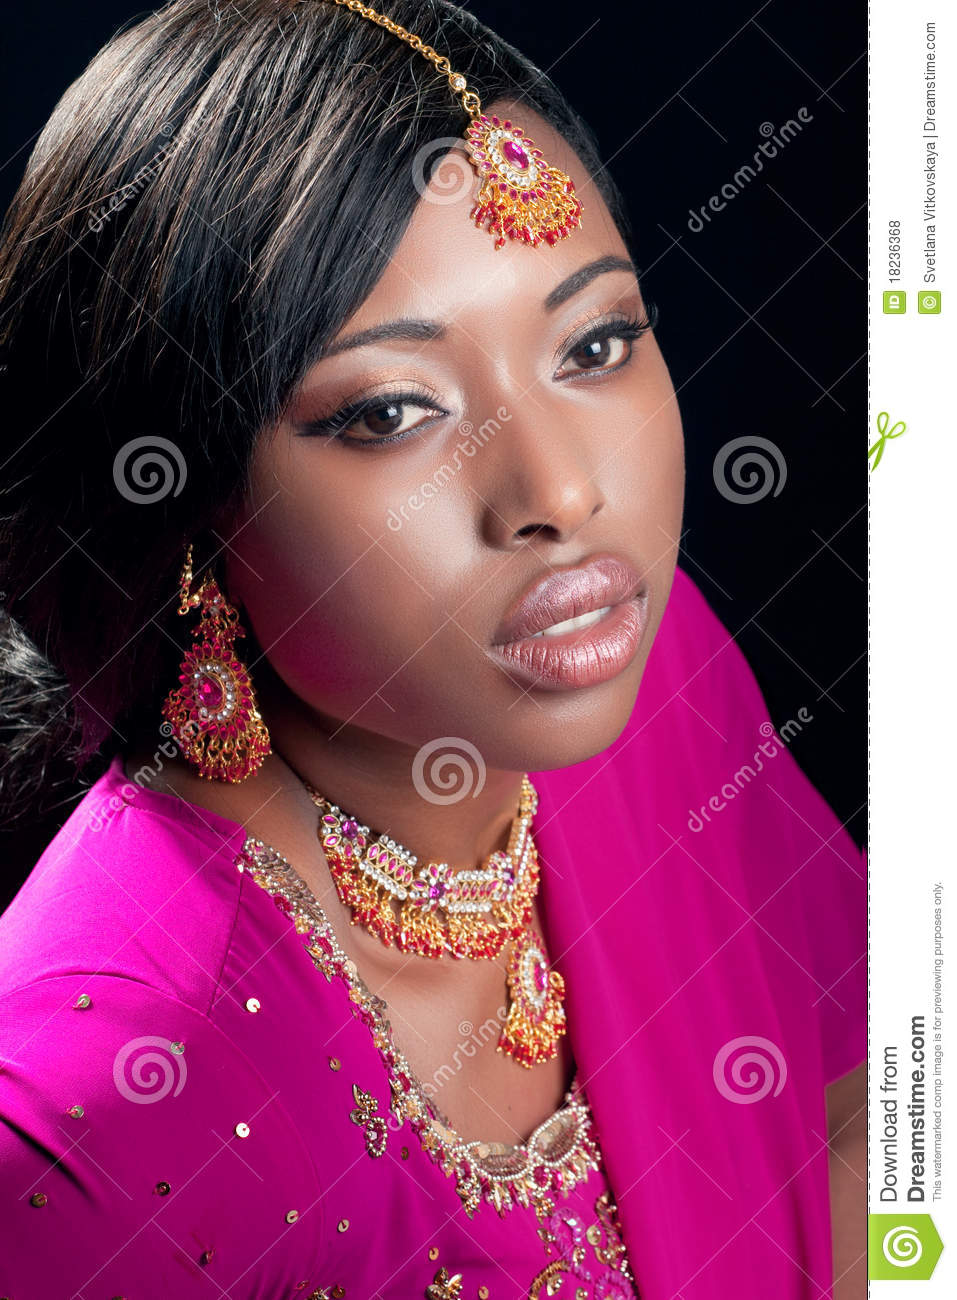 Young Woman Wearing Indian Clothes And Jewelry Royalty